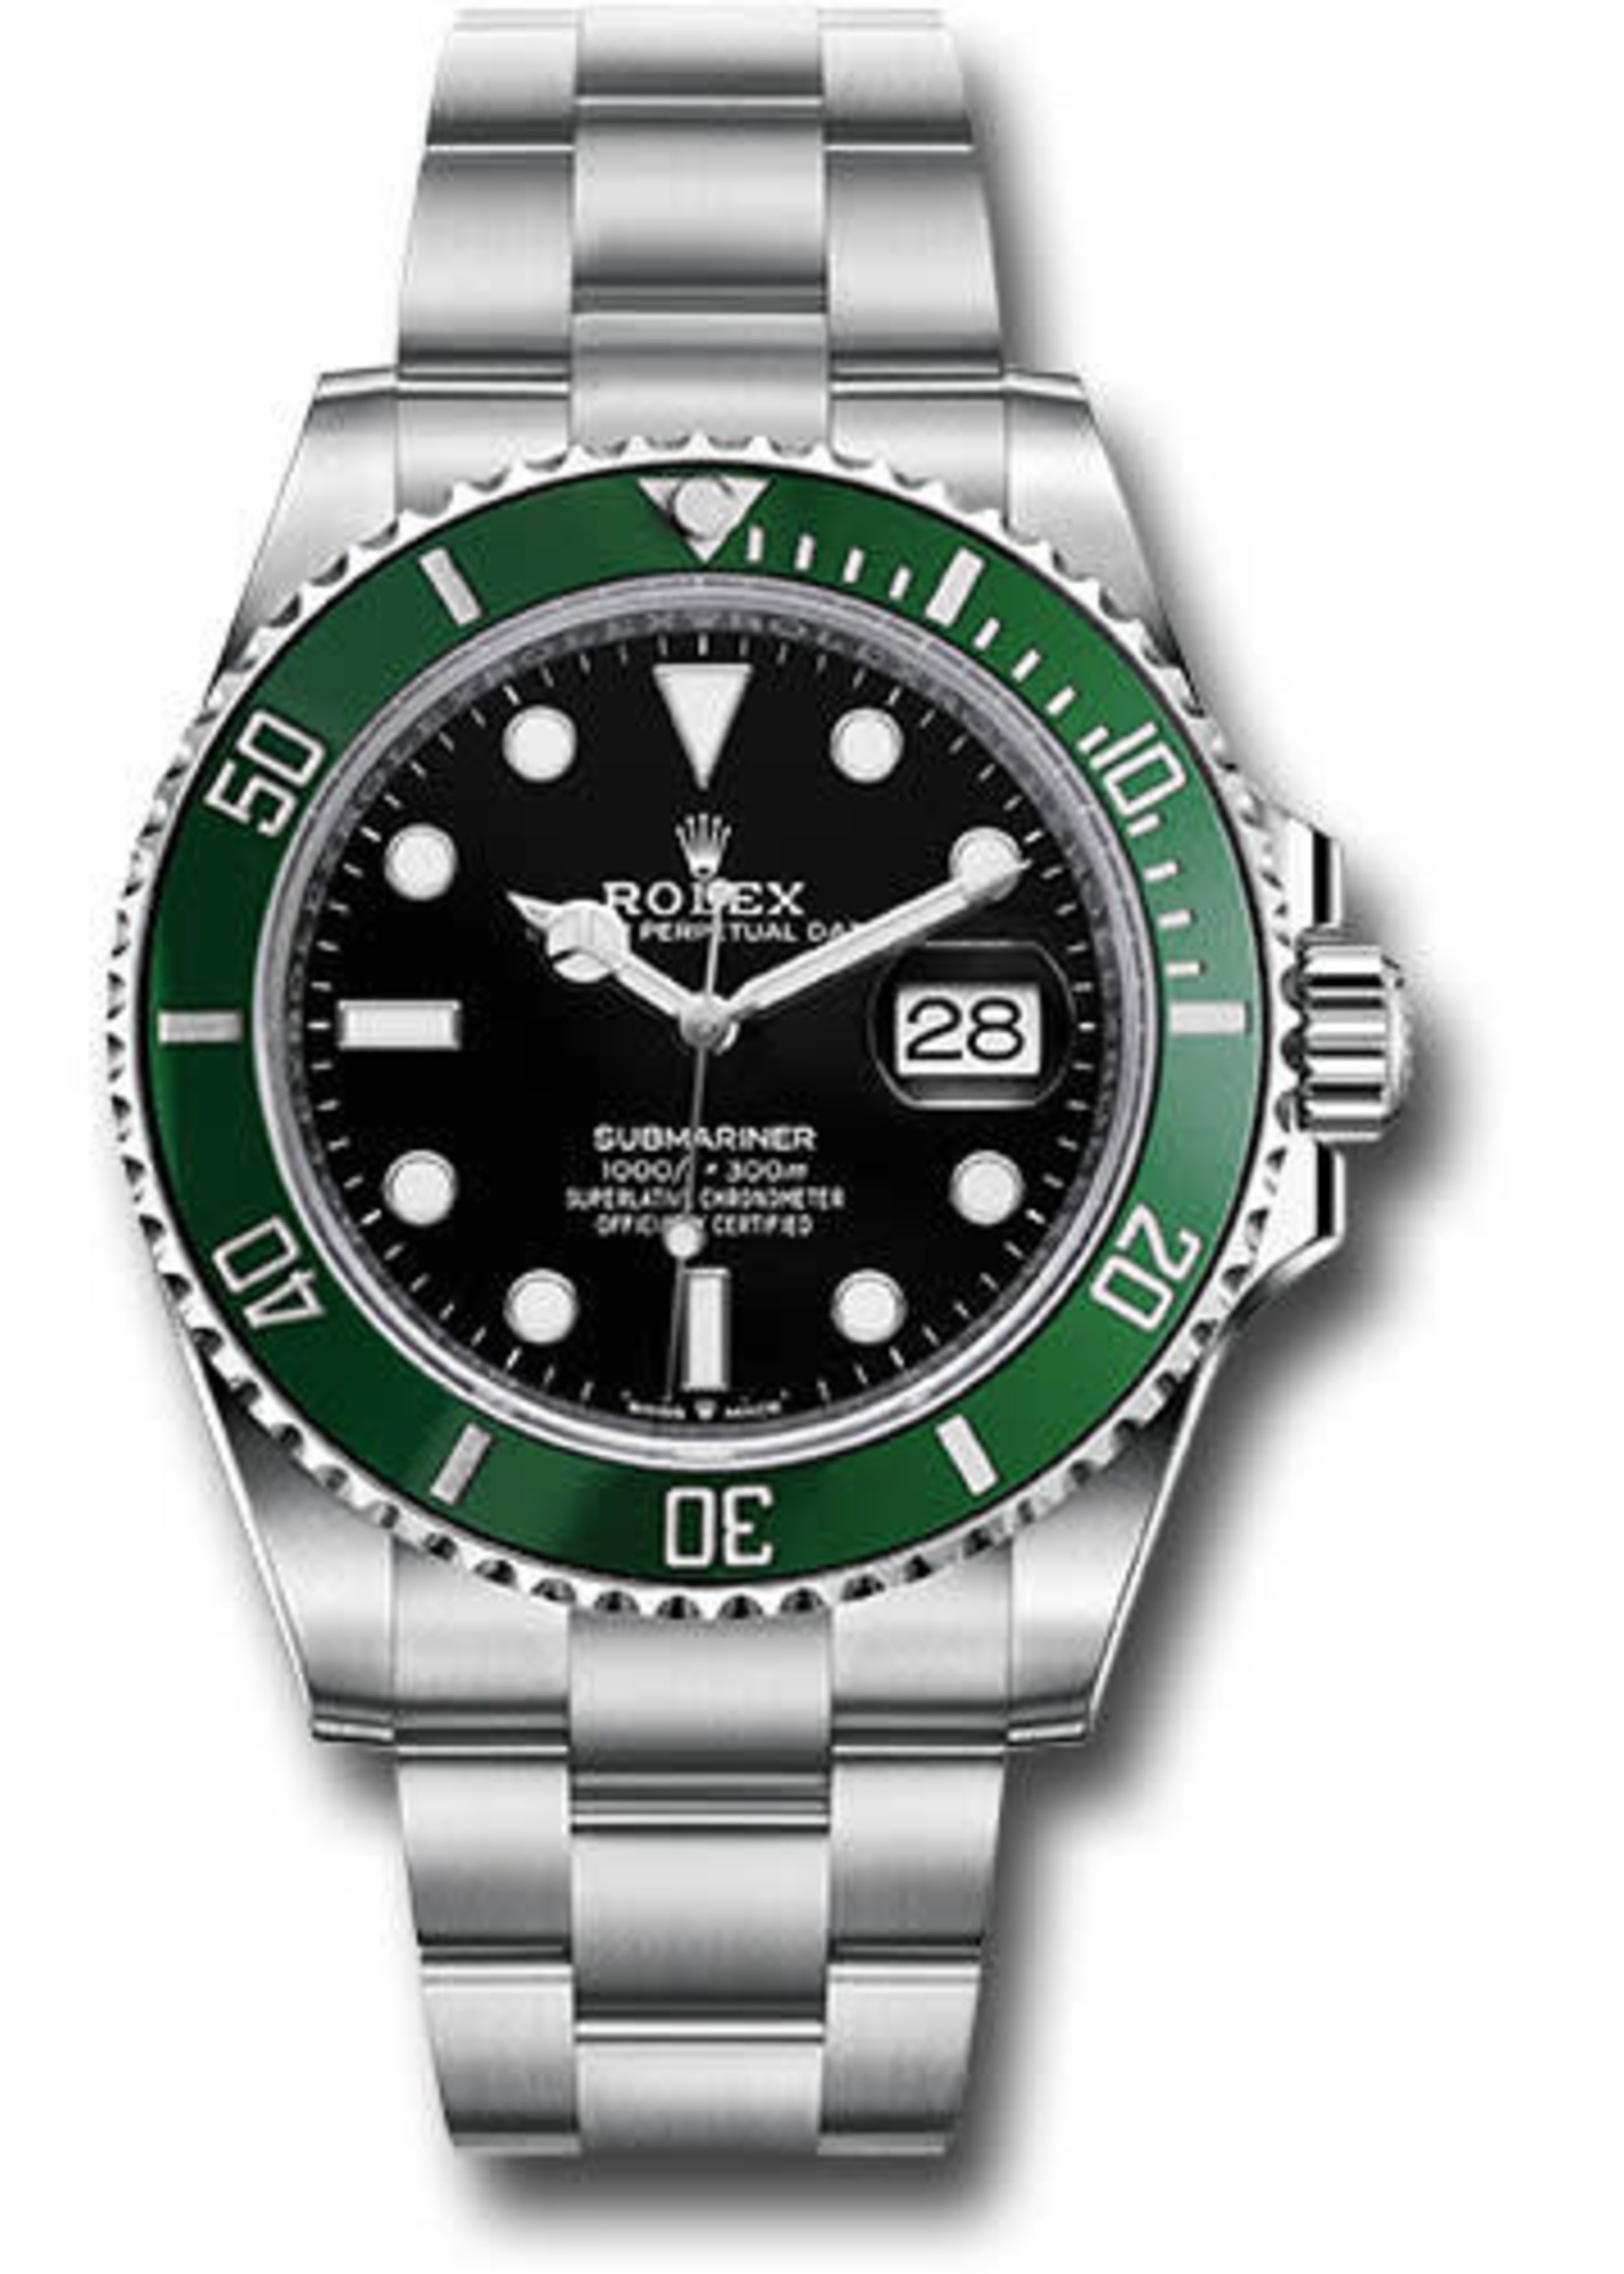 Rolex ROLEX SUBMARINER 41MM (2020 B+P) #126610LV